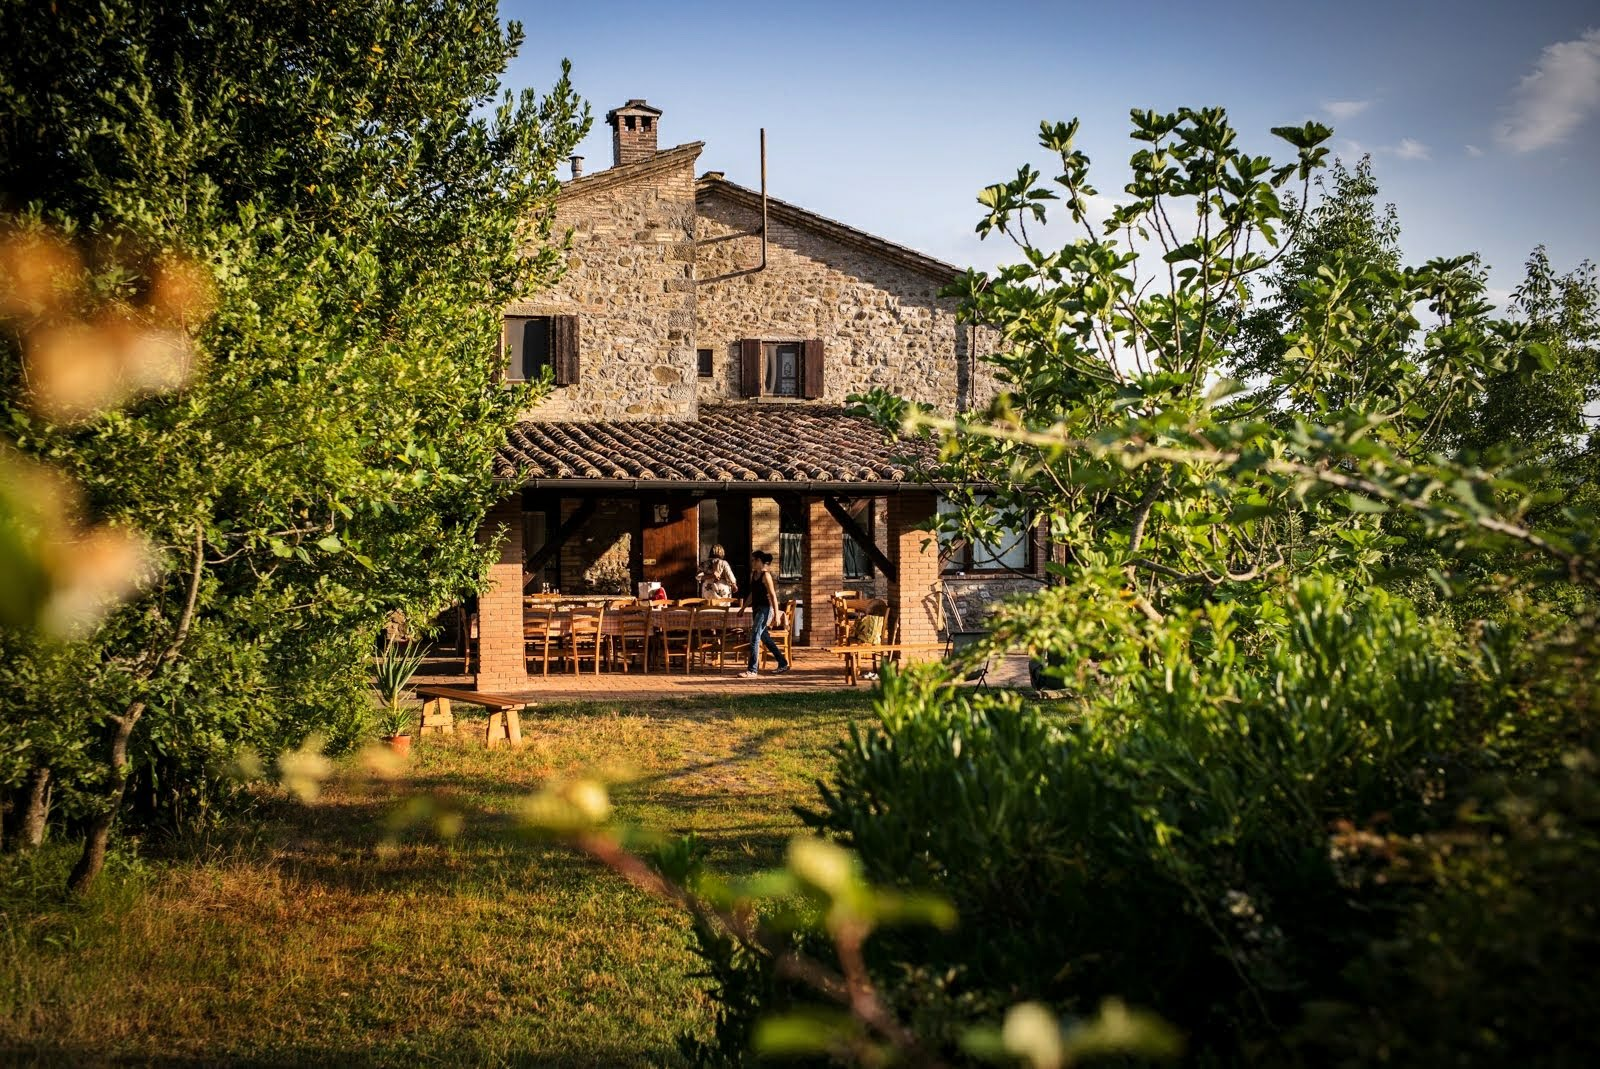 What is Included: - 4 Nights in a beautiful Italian Lodge4 Days of yoga and rejuvenation practicesFull board gourmet vegan organic farm to table meals.Tea, herbal tea, coffeeAromatised watersHealthy snacks like fruits, smoothies, dried fruits and more.Wine with the evening meal.Transfer to and from Perugia airport.Yoga equipment. All props such as bolsters, blocks, straps and mats are available at the Lodge (but feel welcome to bring whatever you need)Use of Salt Pool.